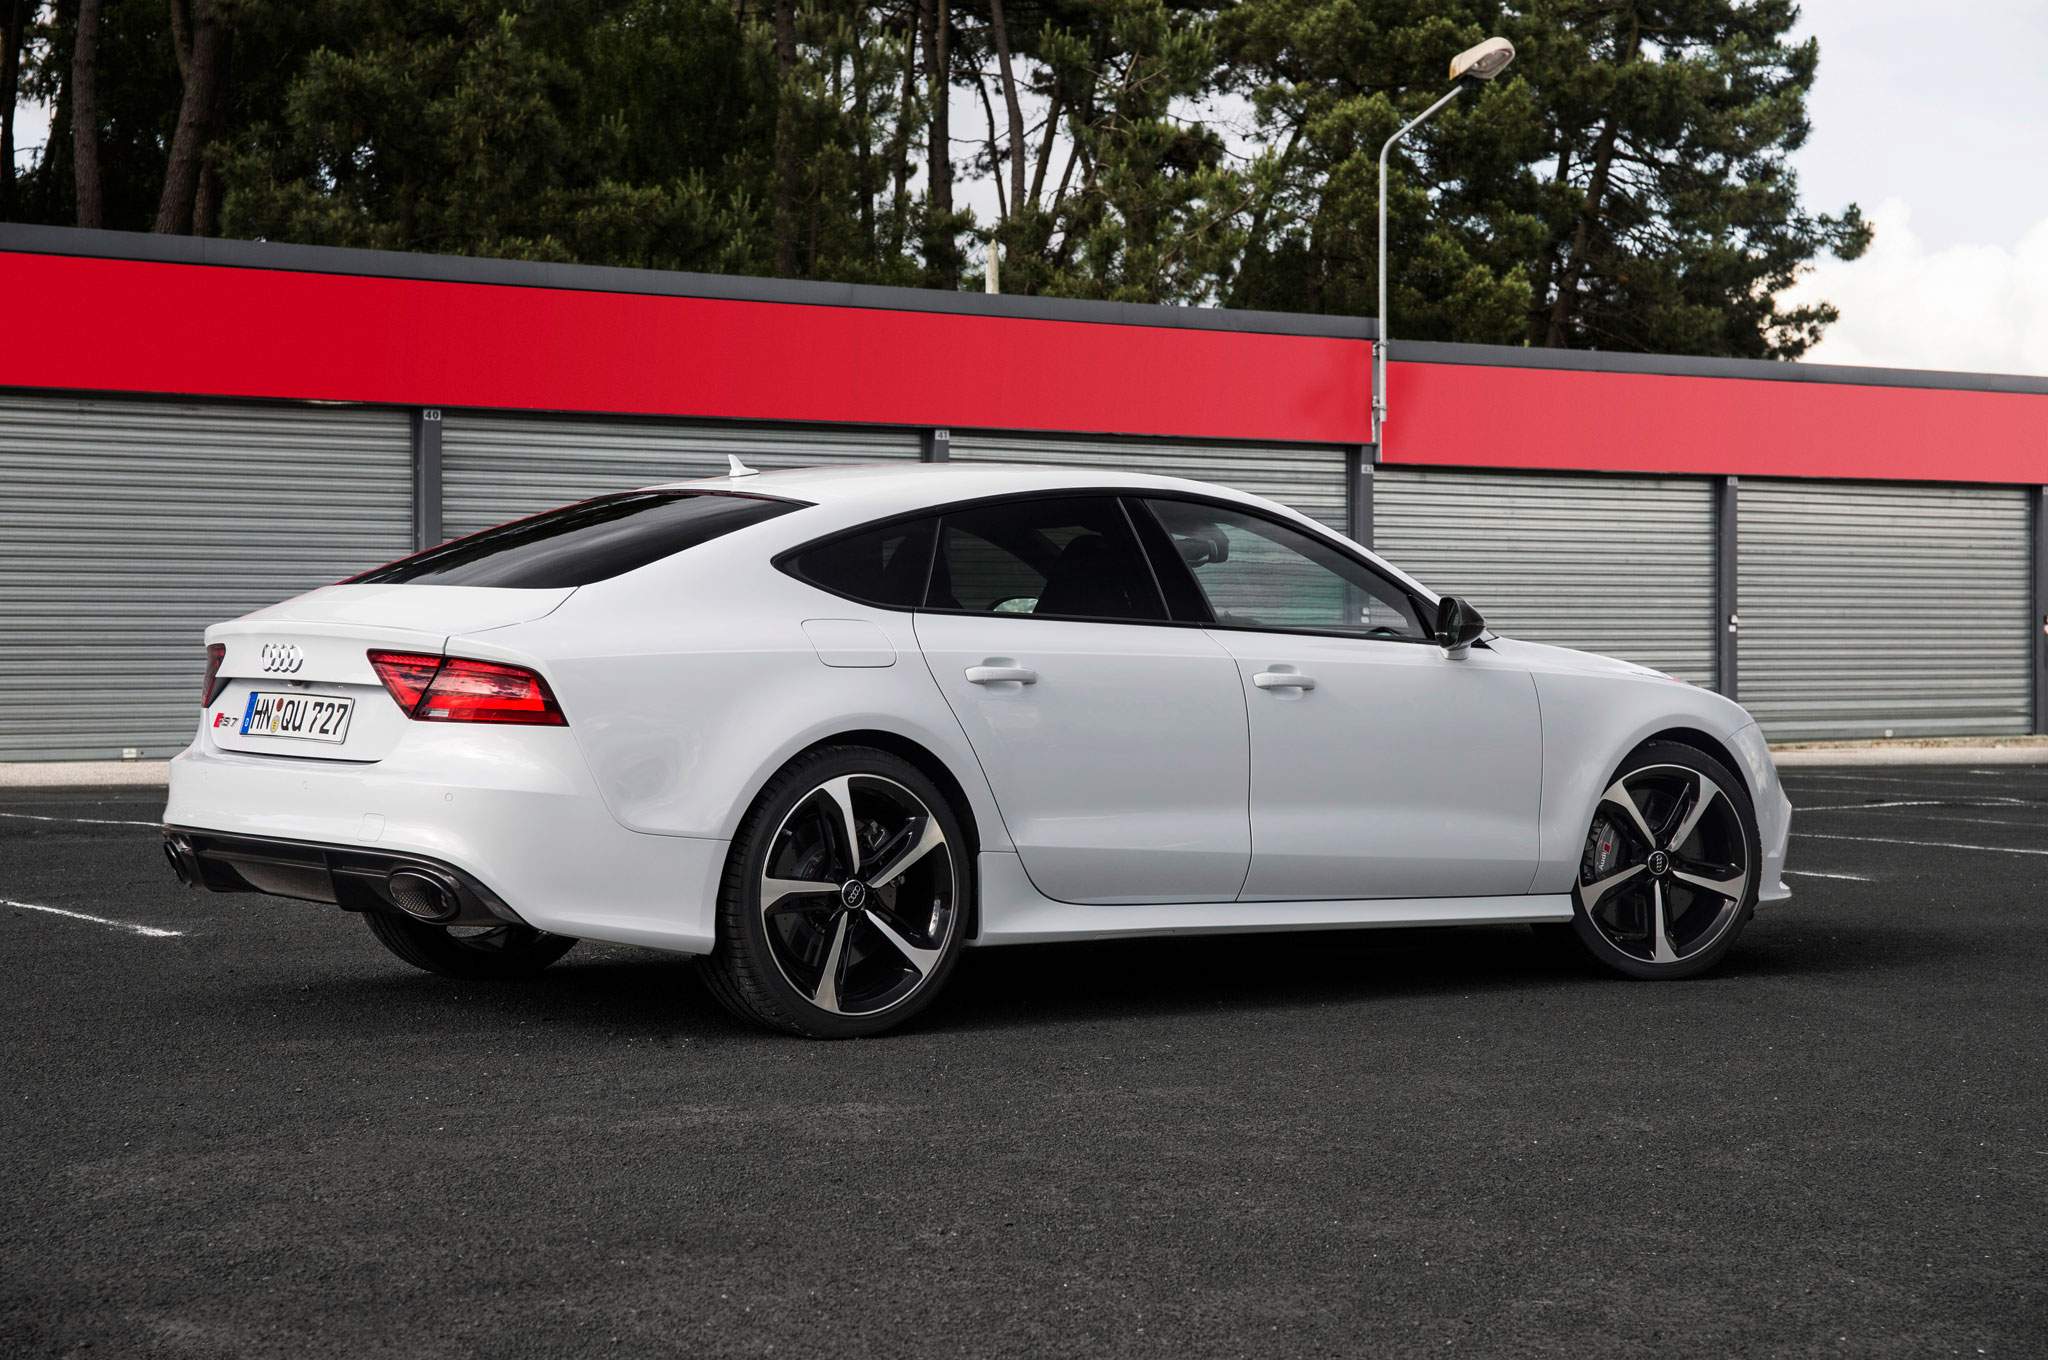 2014 audi rs7 first drive - automobile magazine